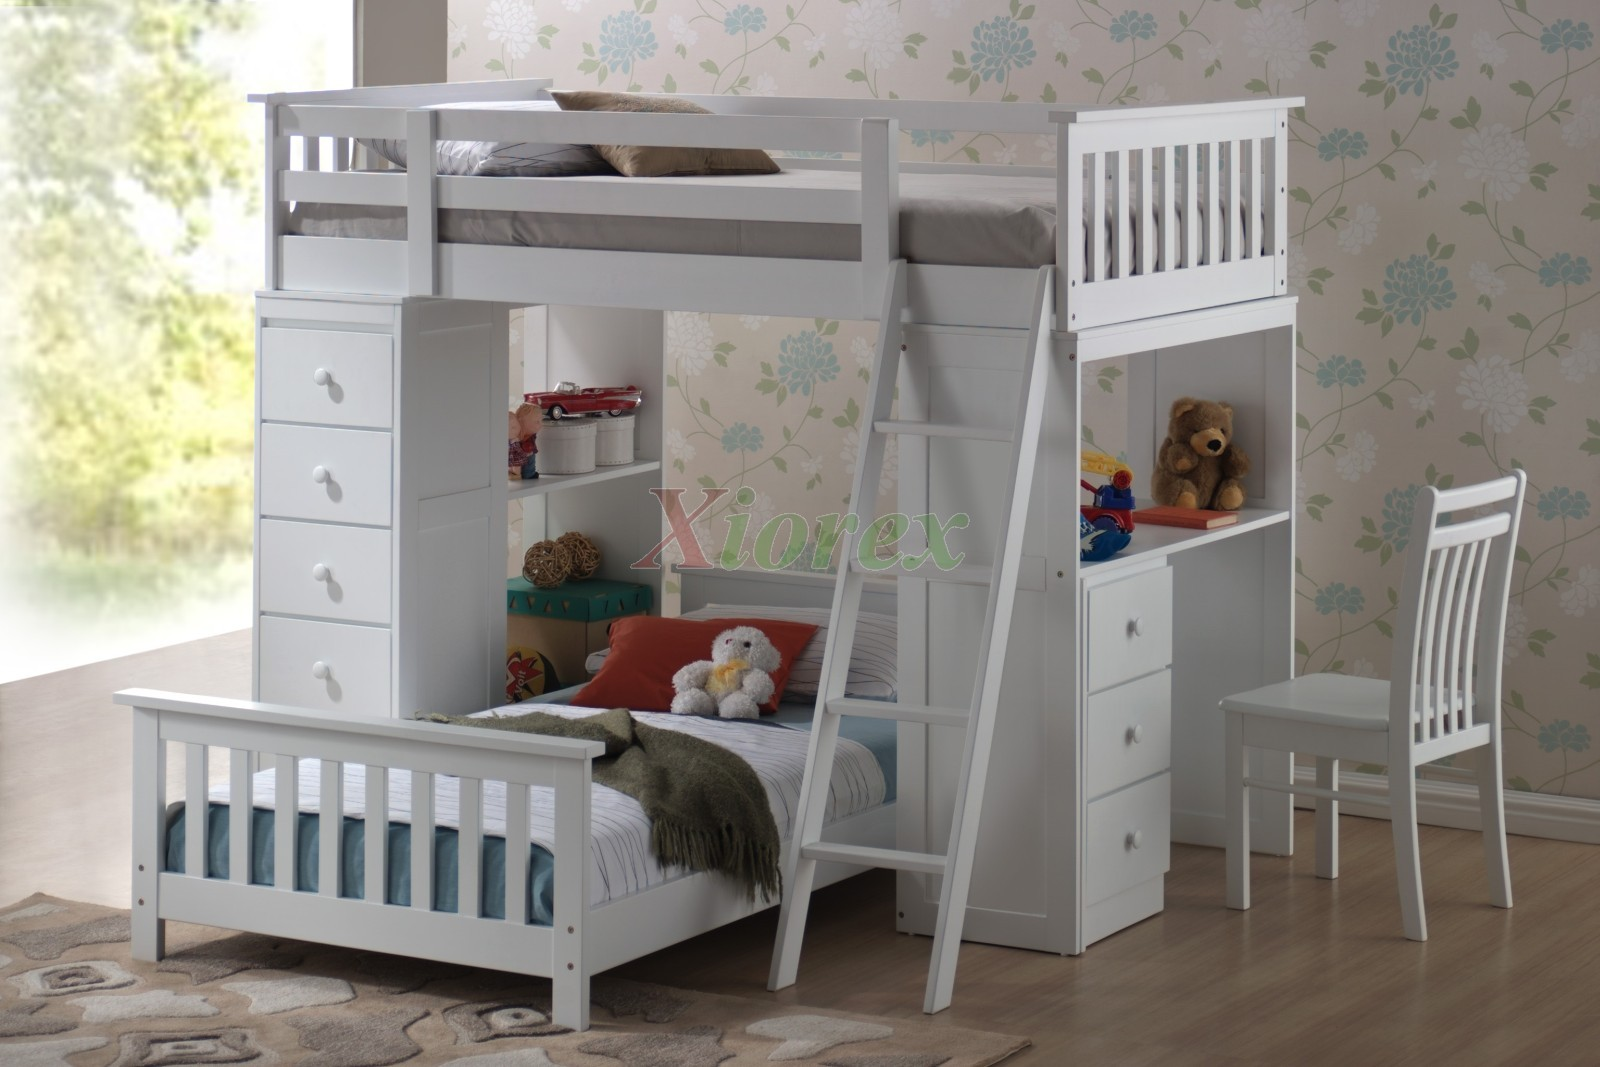 low for view foter kids twin homeofficedecoration bed with l larger desk loft beds warehousemold bunk com